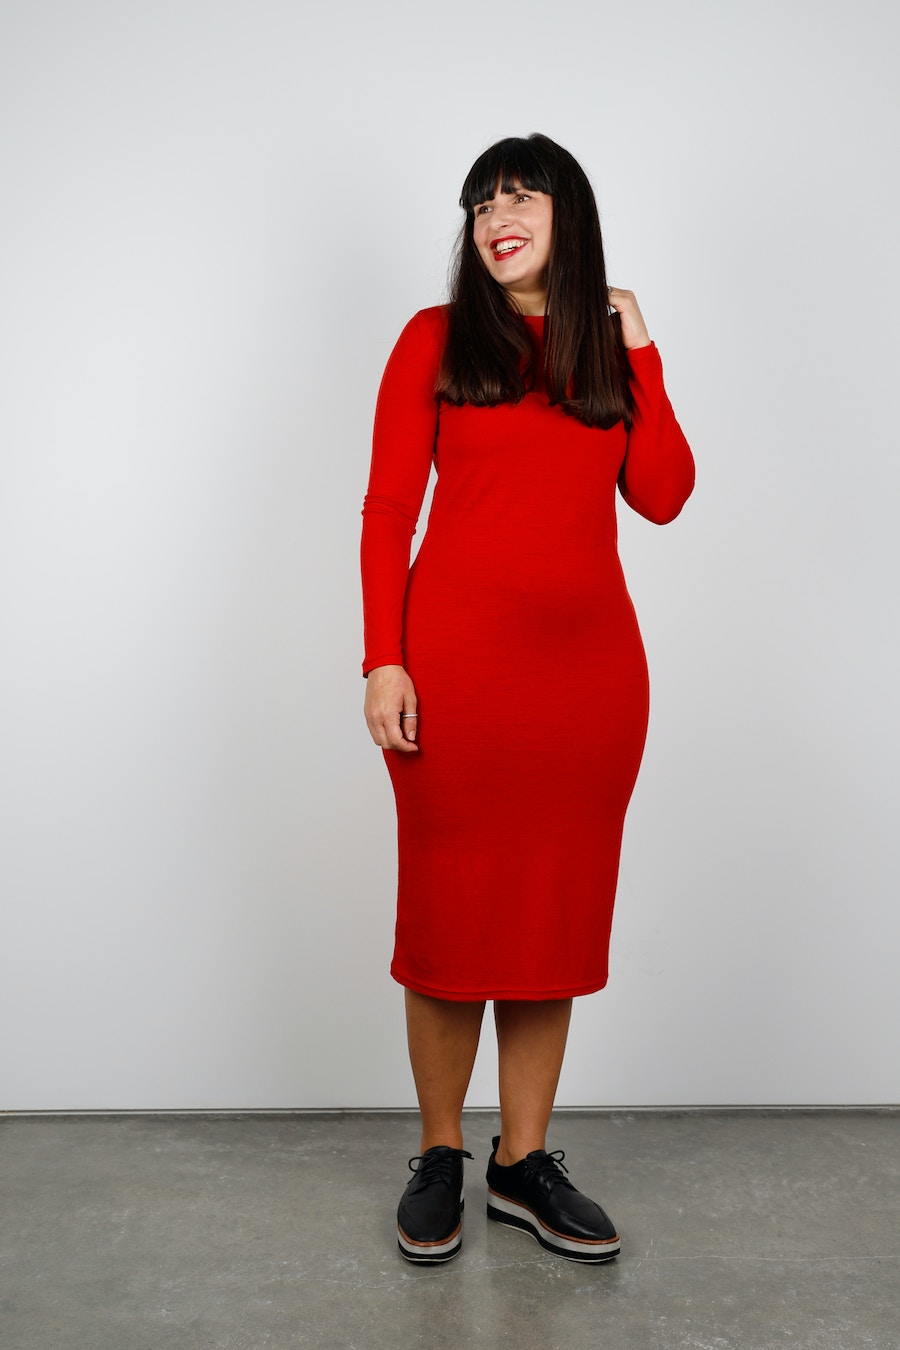 Poppy nikko dress side